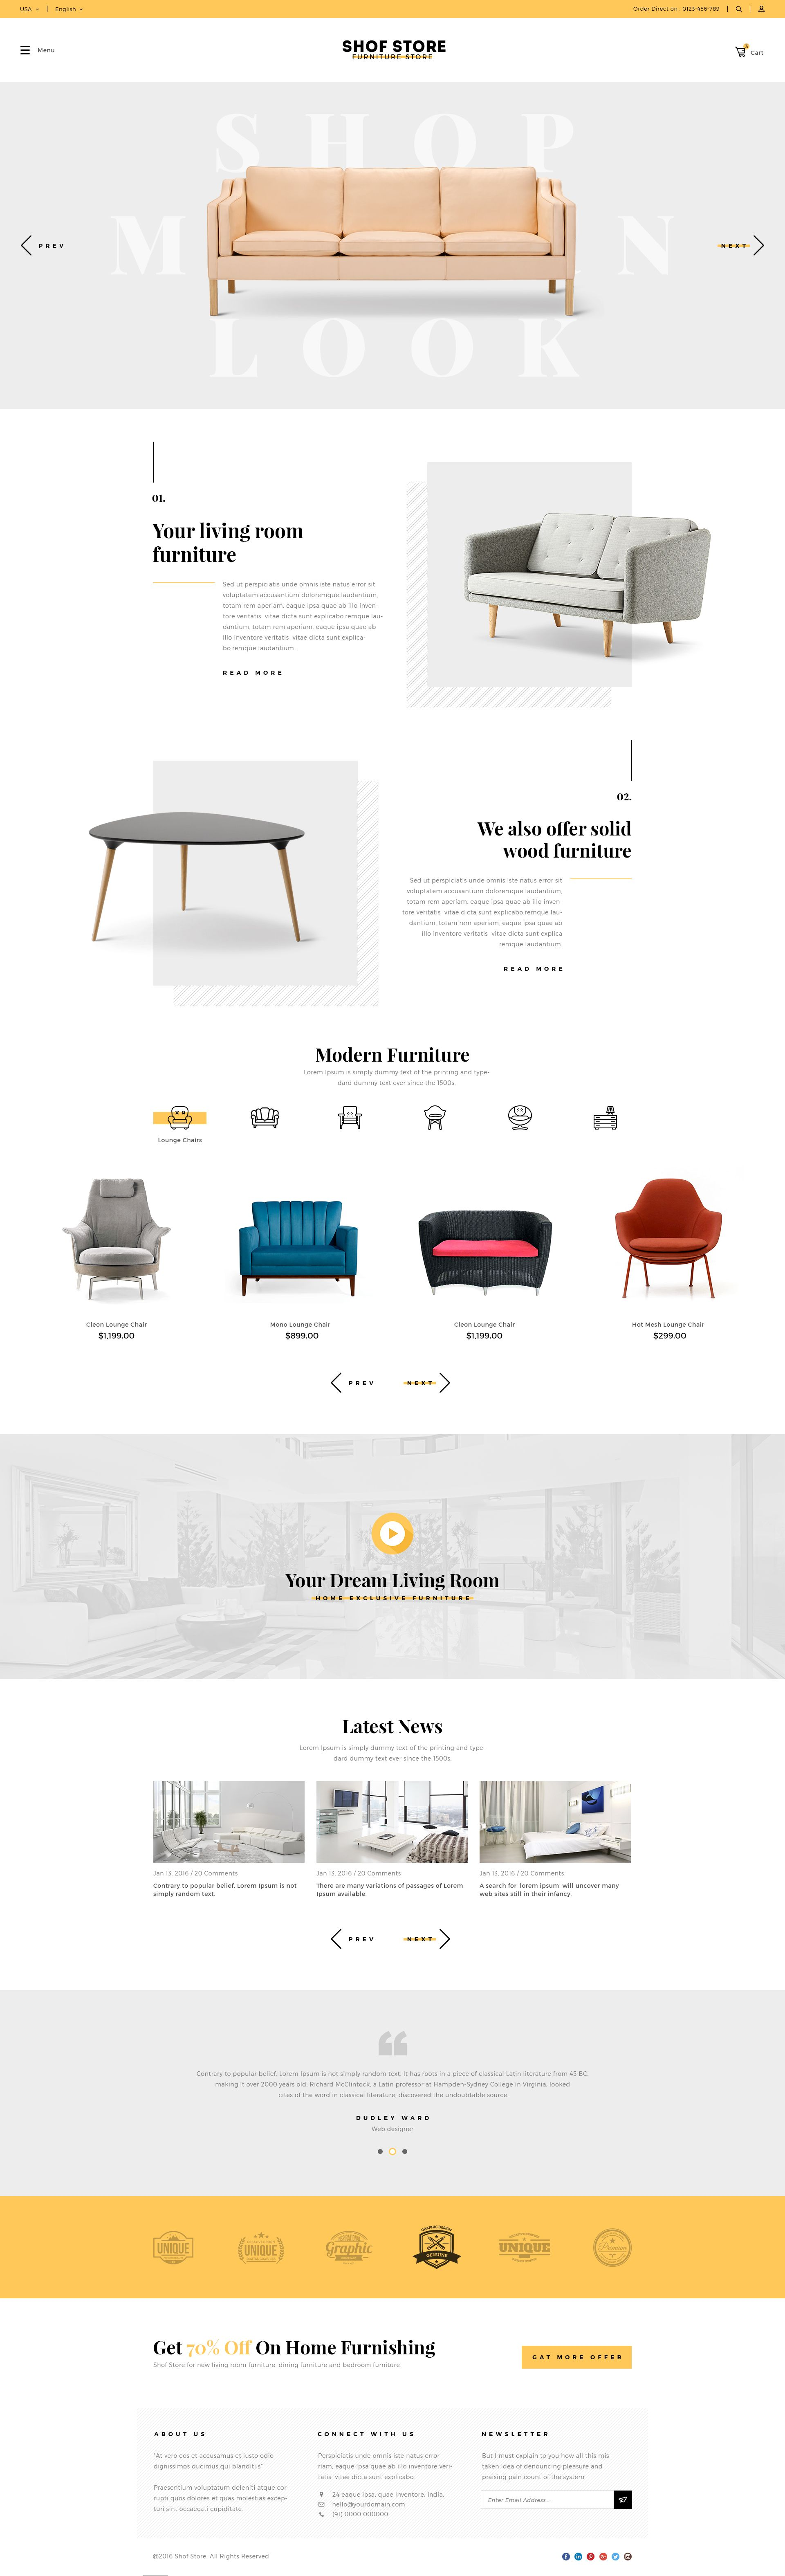 Shofstore Stylish Ecommerce Psd Template For Furniture Store Ecommerce Stylish Shofstore Psd Web Layout Design Homepage Layout Furniture Website